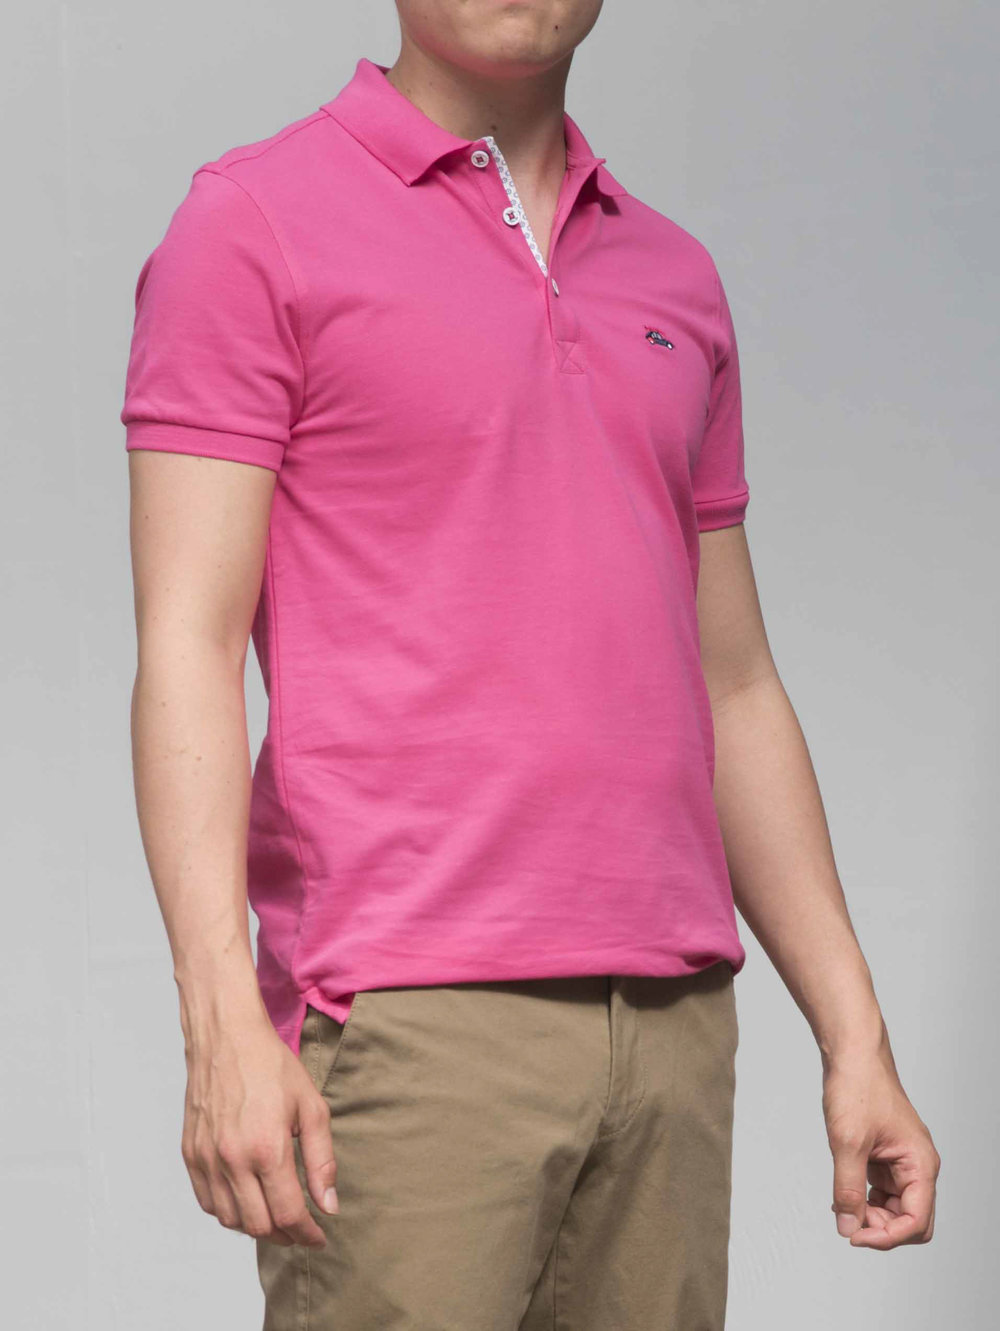 Men's pink polo cropped.jpg